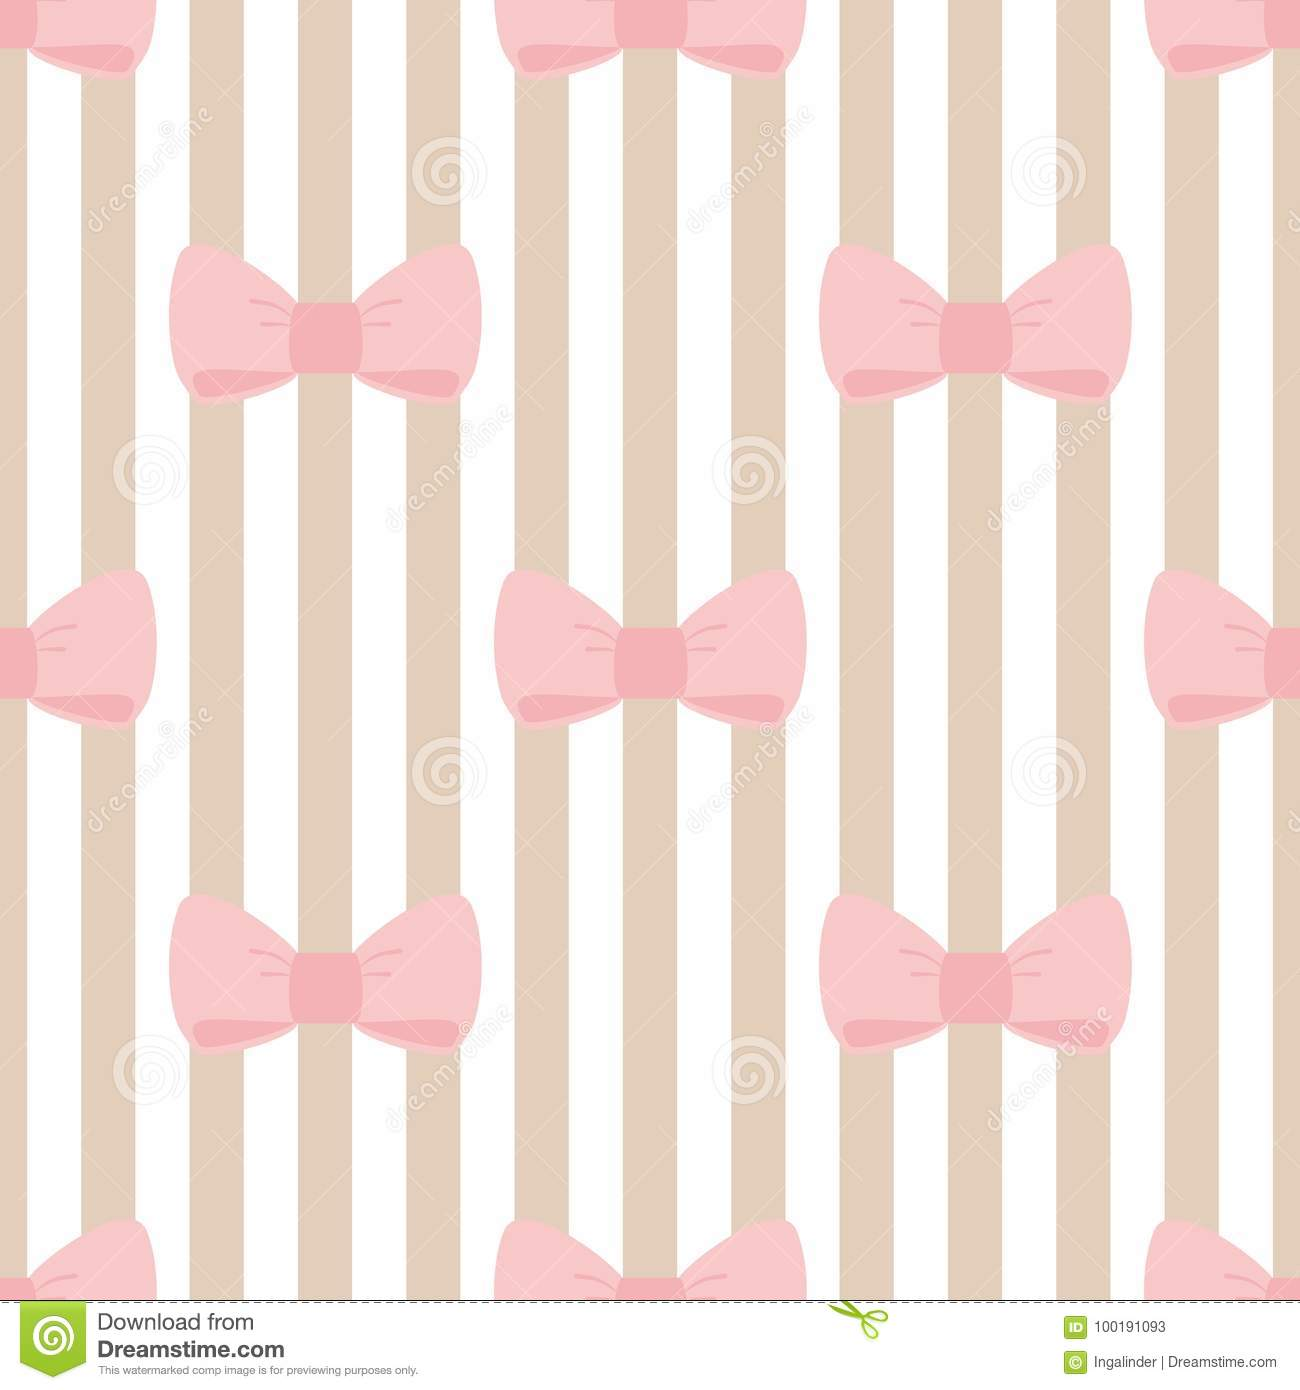 Seamless Vector Pattern With Pastel Pink Bows On A Light Brown And